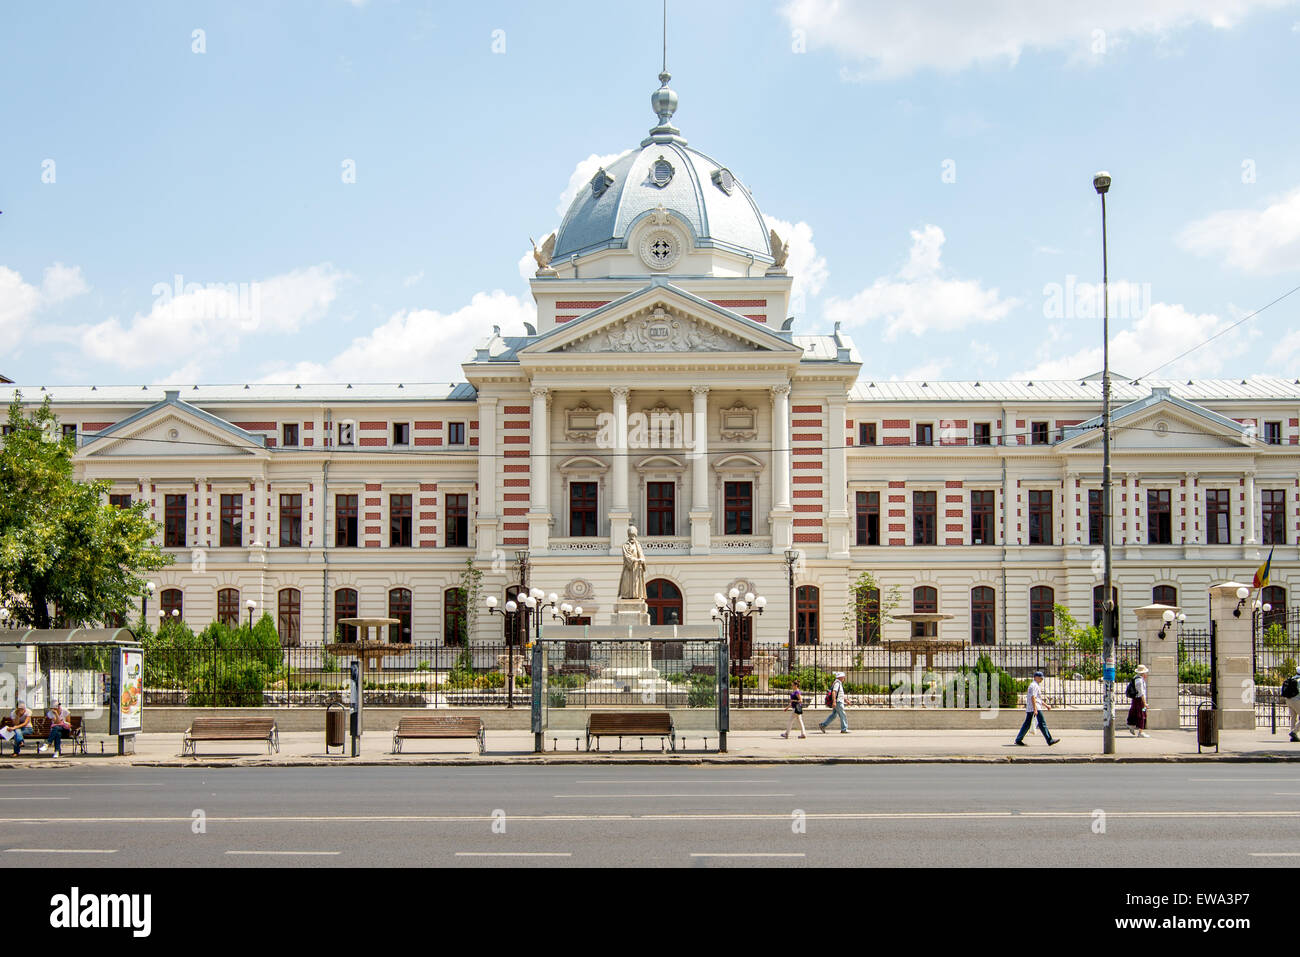 Coltea Hospital in Bucharest, Hungary - Stock Image